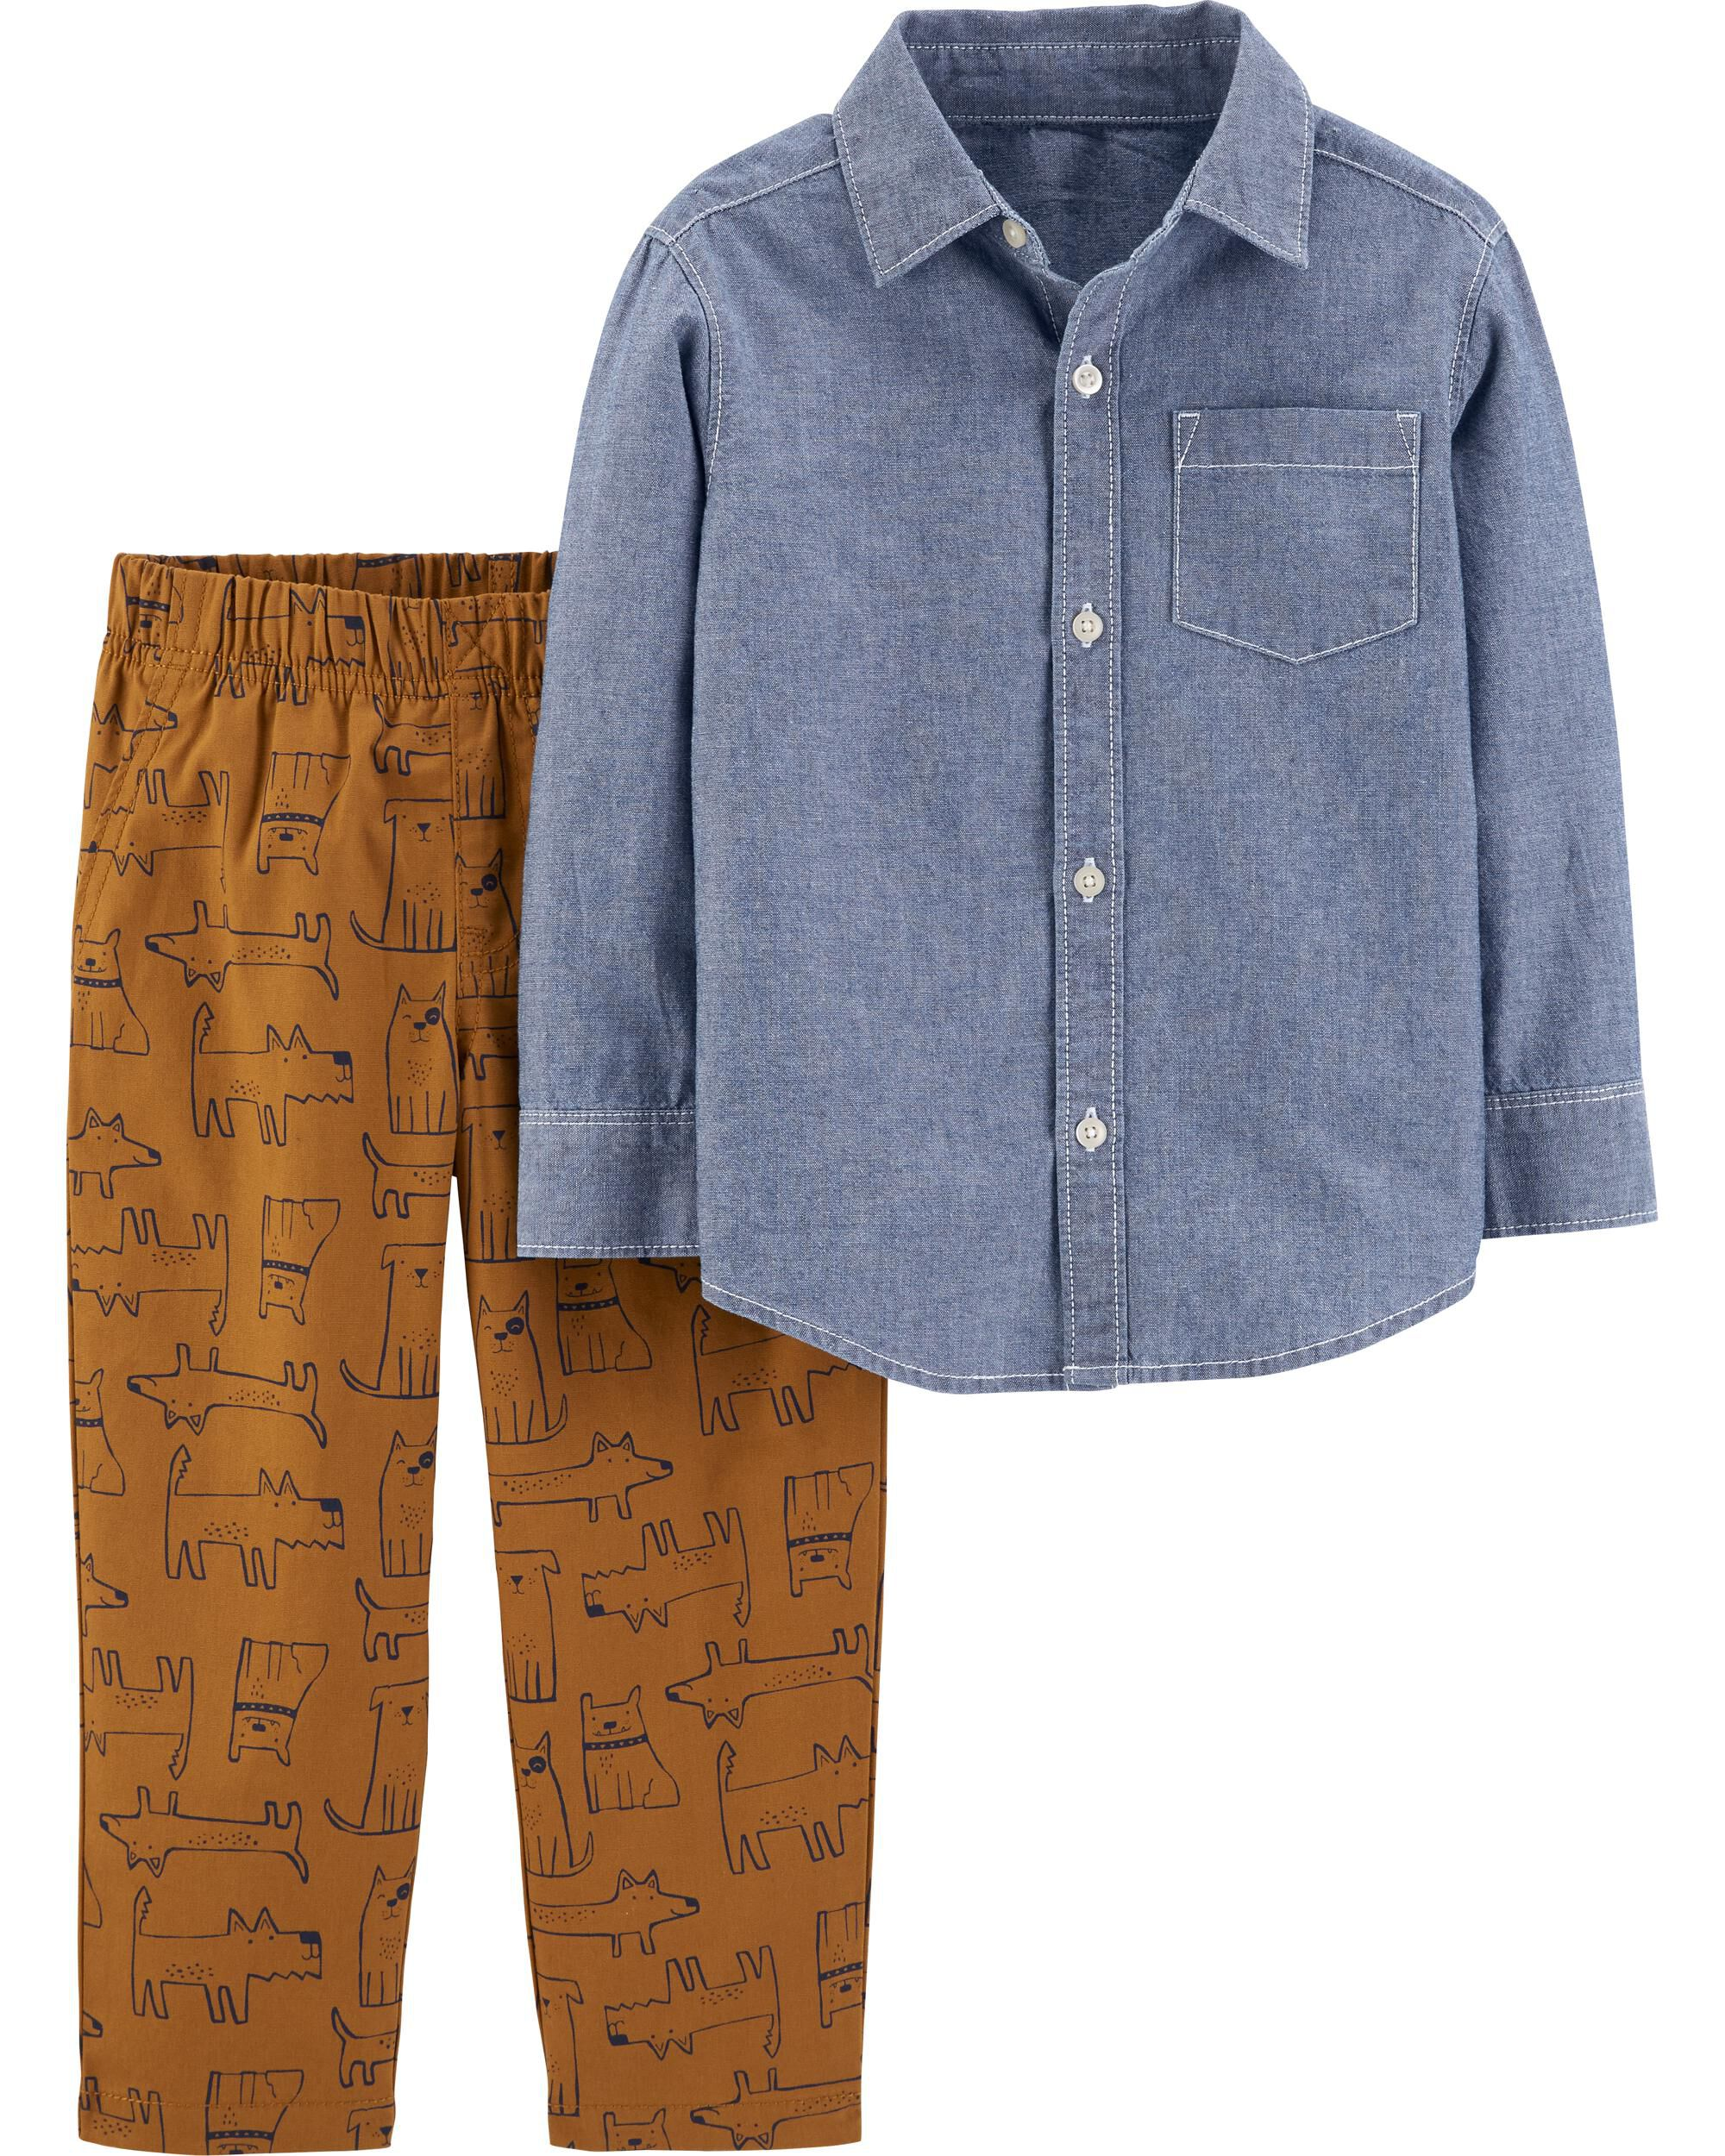 *CLEARANCE* 2-Piece Chambray Button-Front Top & Dog Pant Set